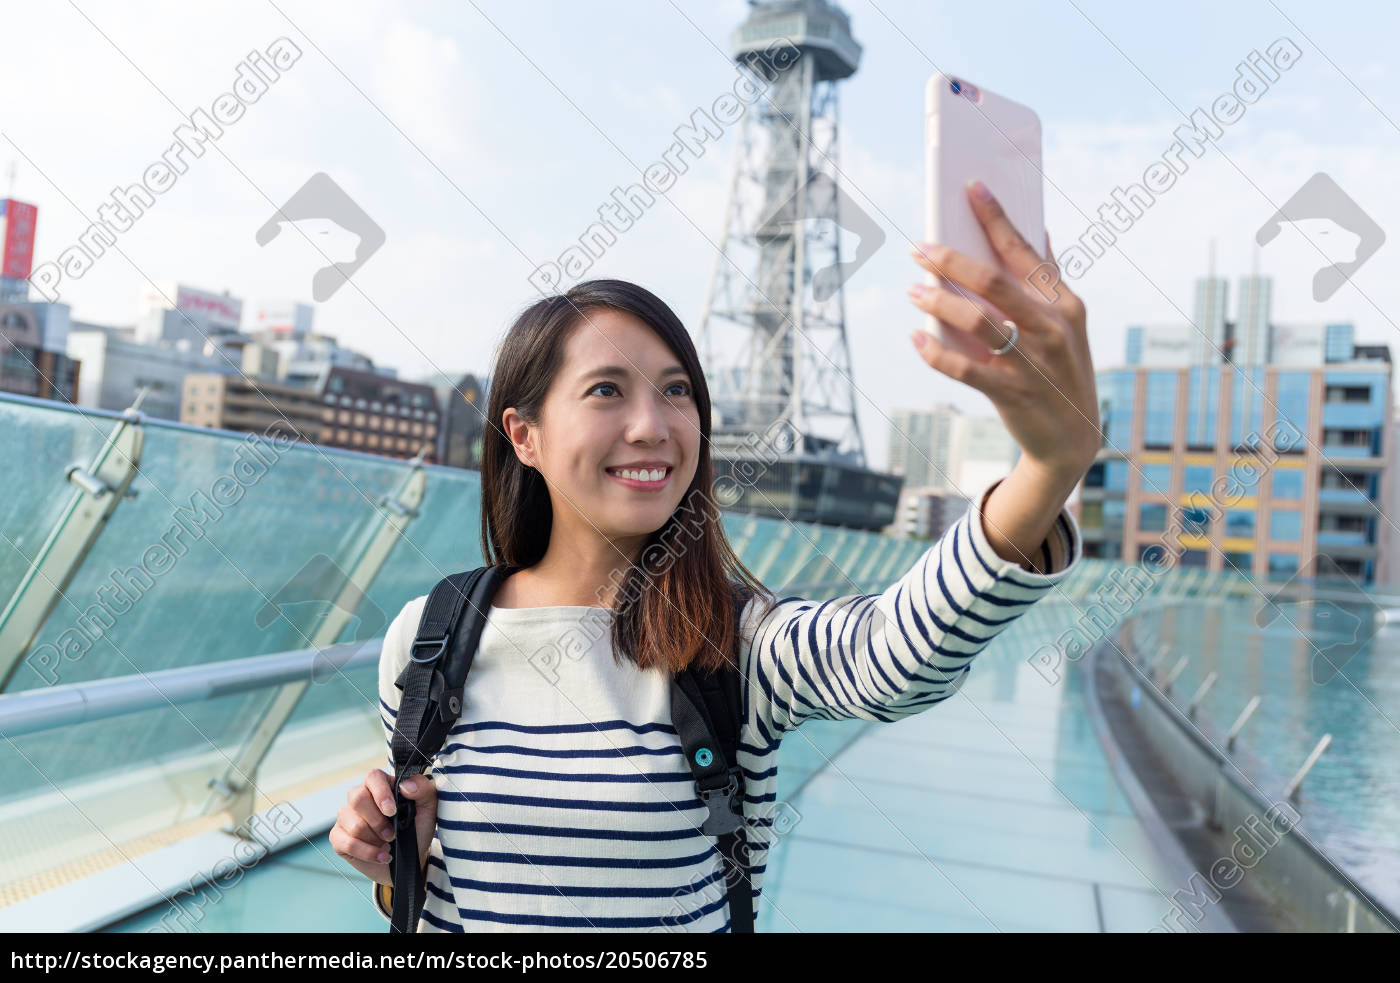 woman, take, photo, with, mobile, phone - 20506785